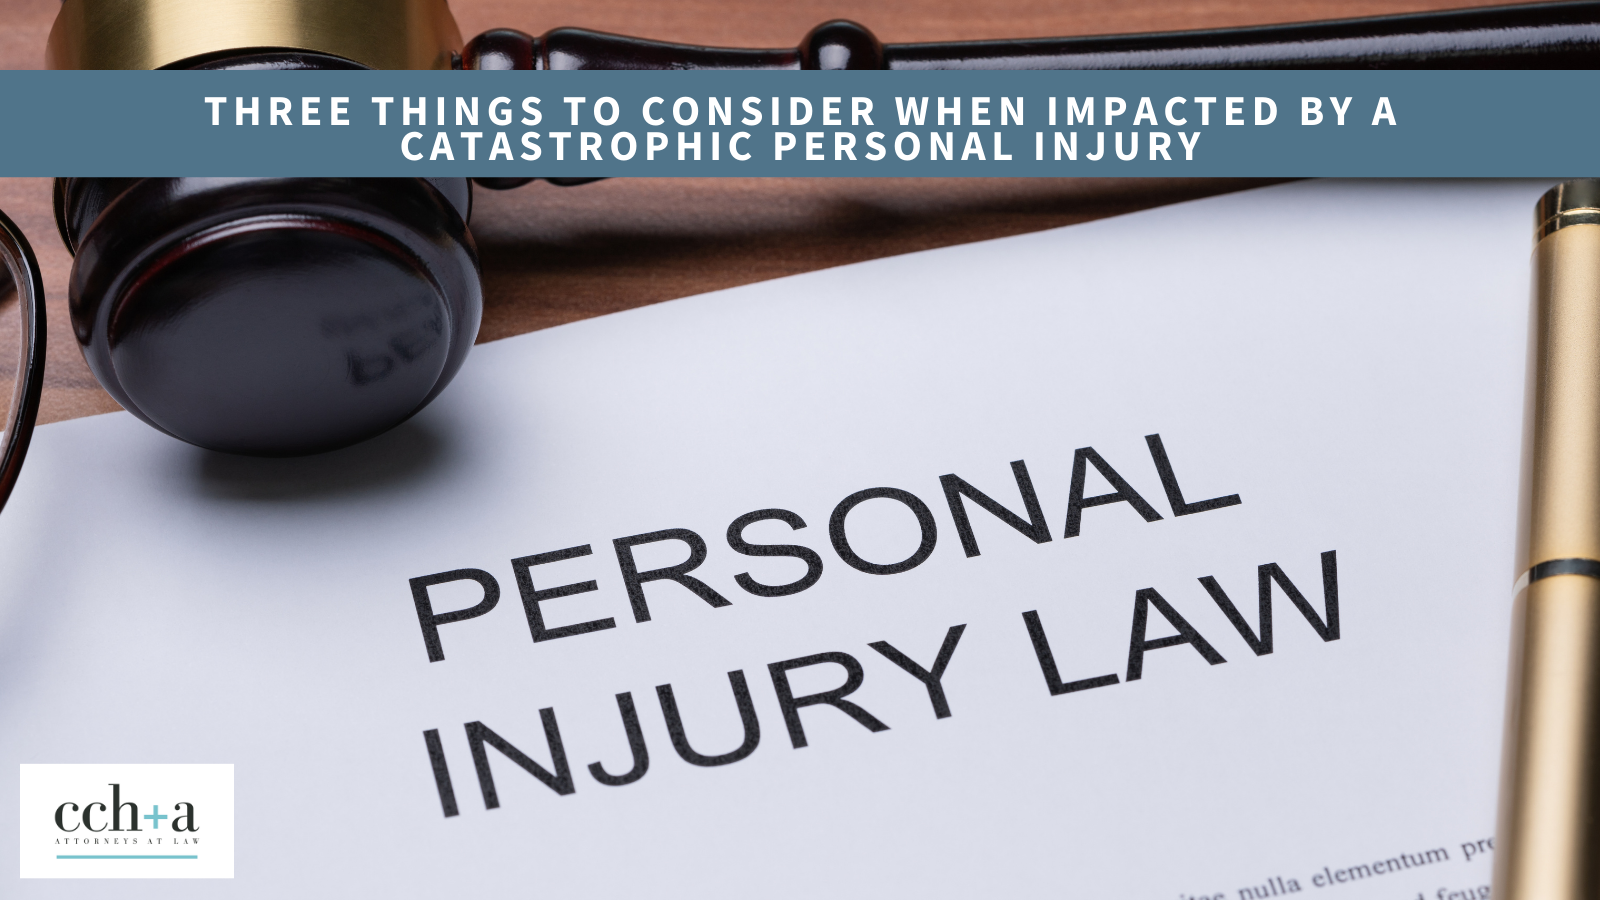 Ccha personal injury tw